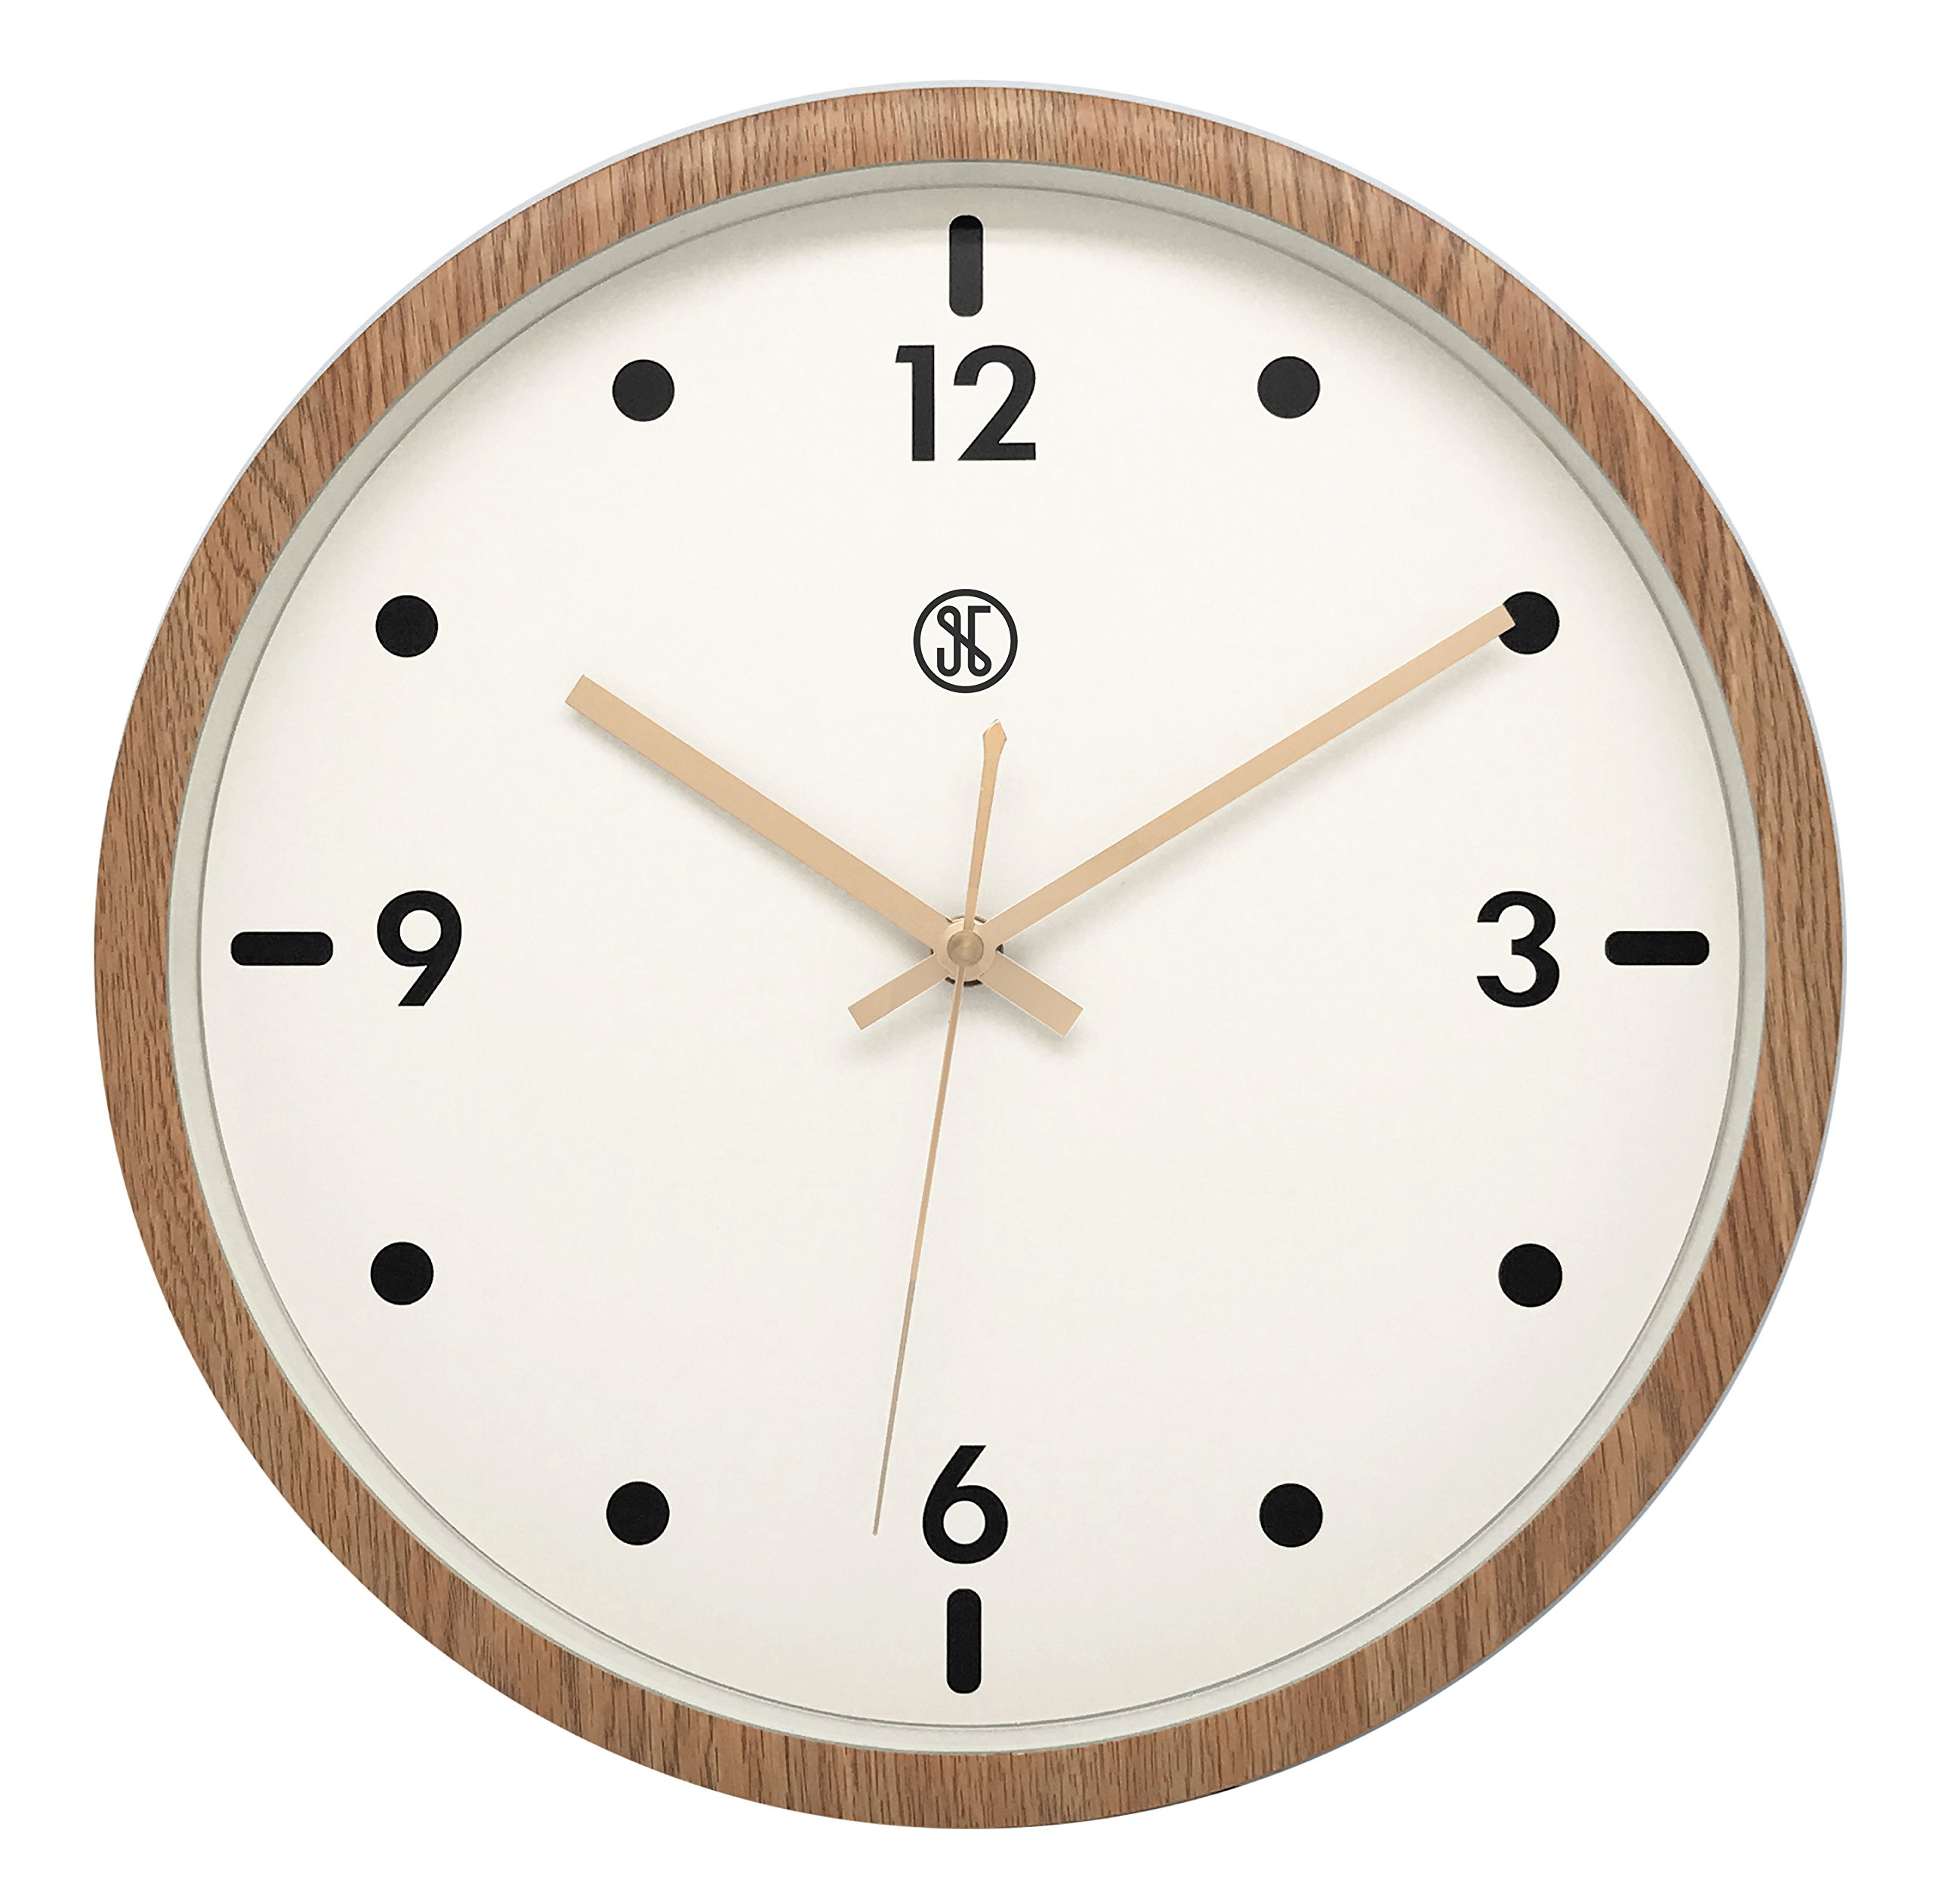 JustNile x A.Cerco 13'' Analog Wall Clock, Non-ticking Precise Sweep Movement, Durable Plastic Made, Oak Wood Grain Design, Sleek Modern Living Room Bedroom Office Decor